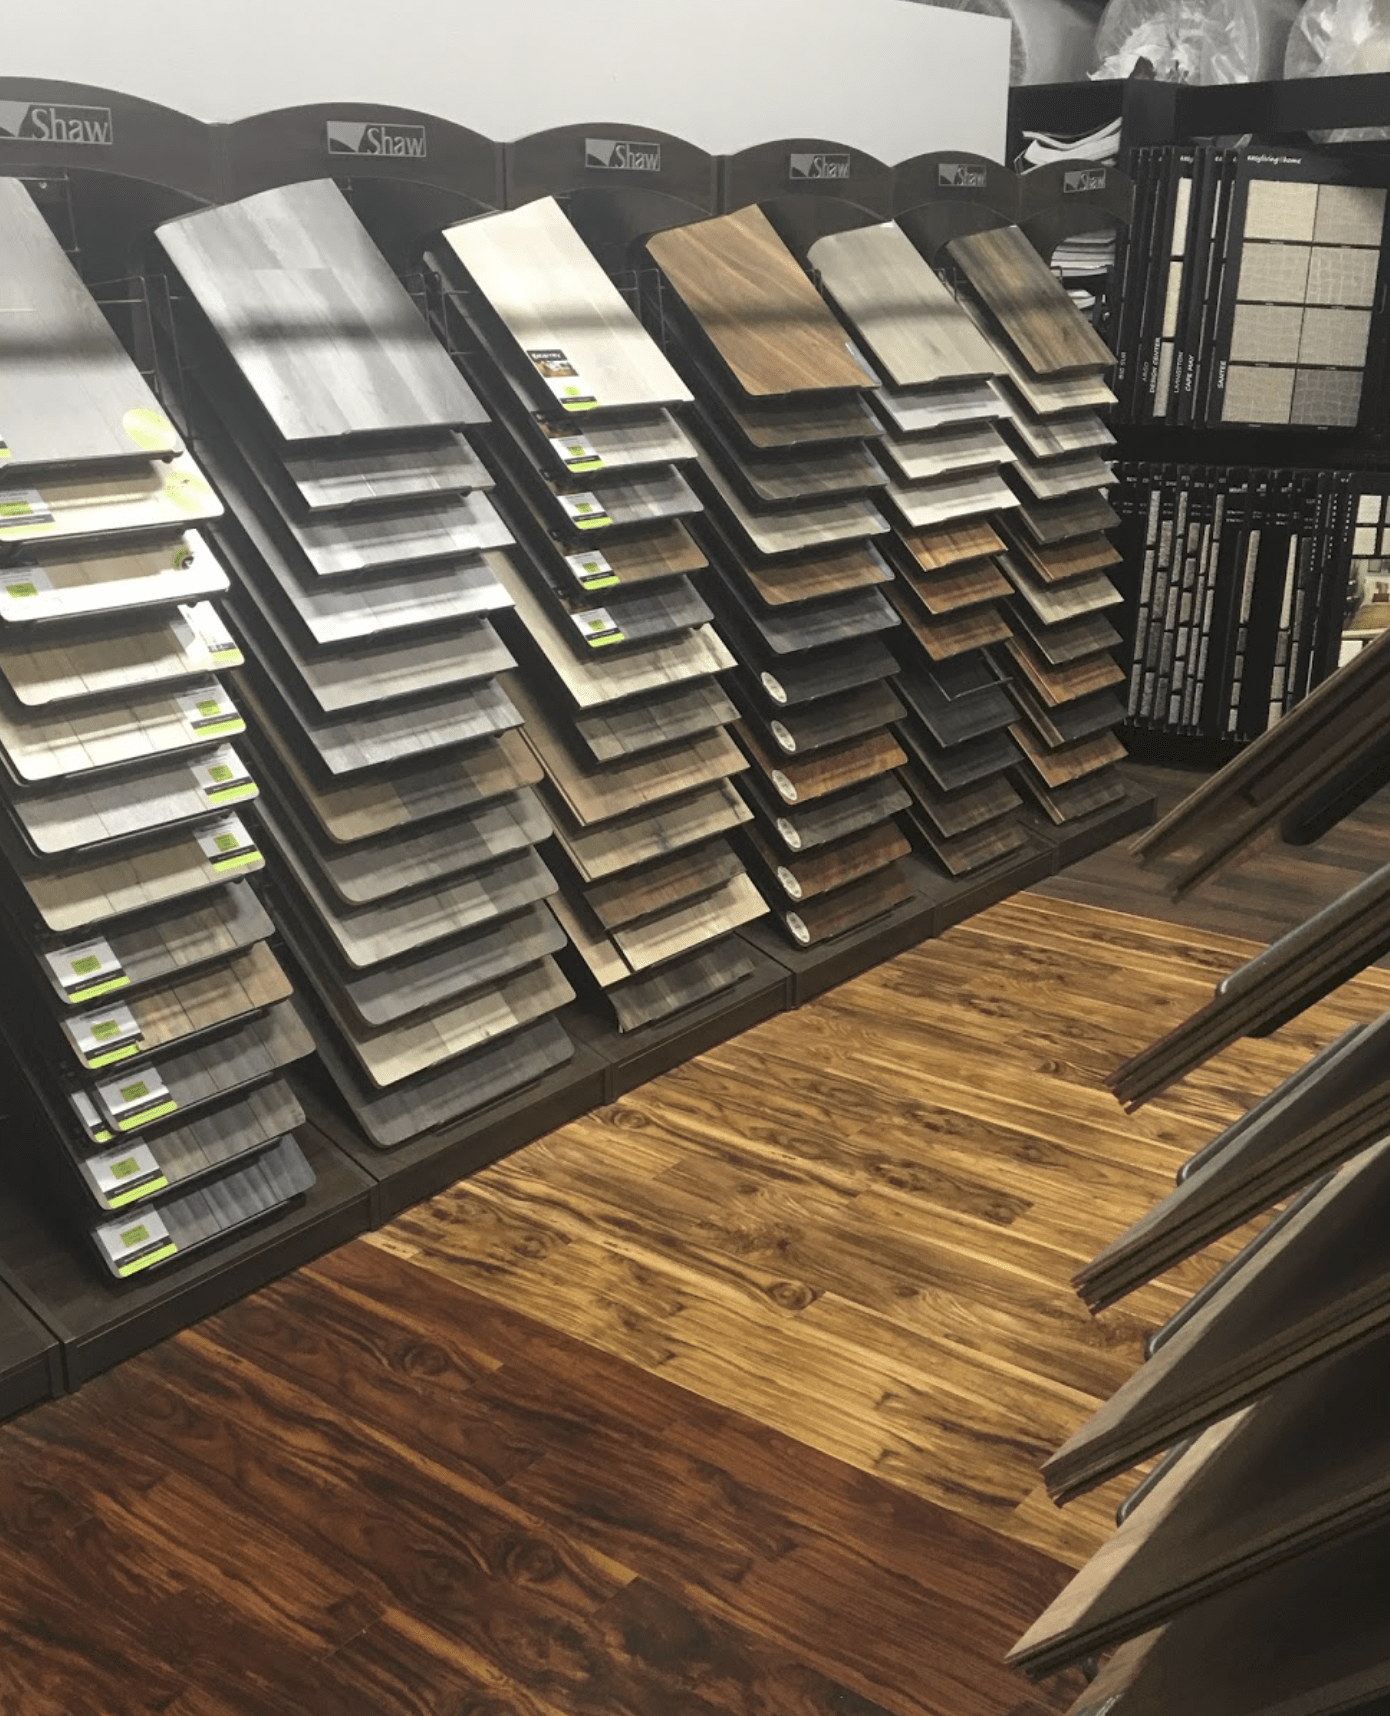 Shaw Floors products at Floor Source in Phoenix, AZ